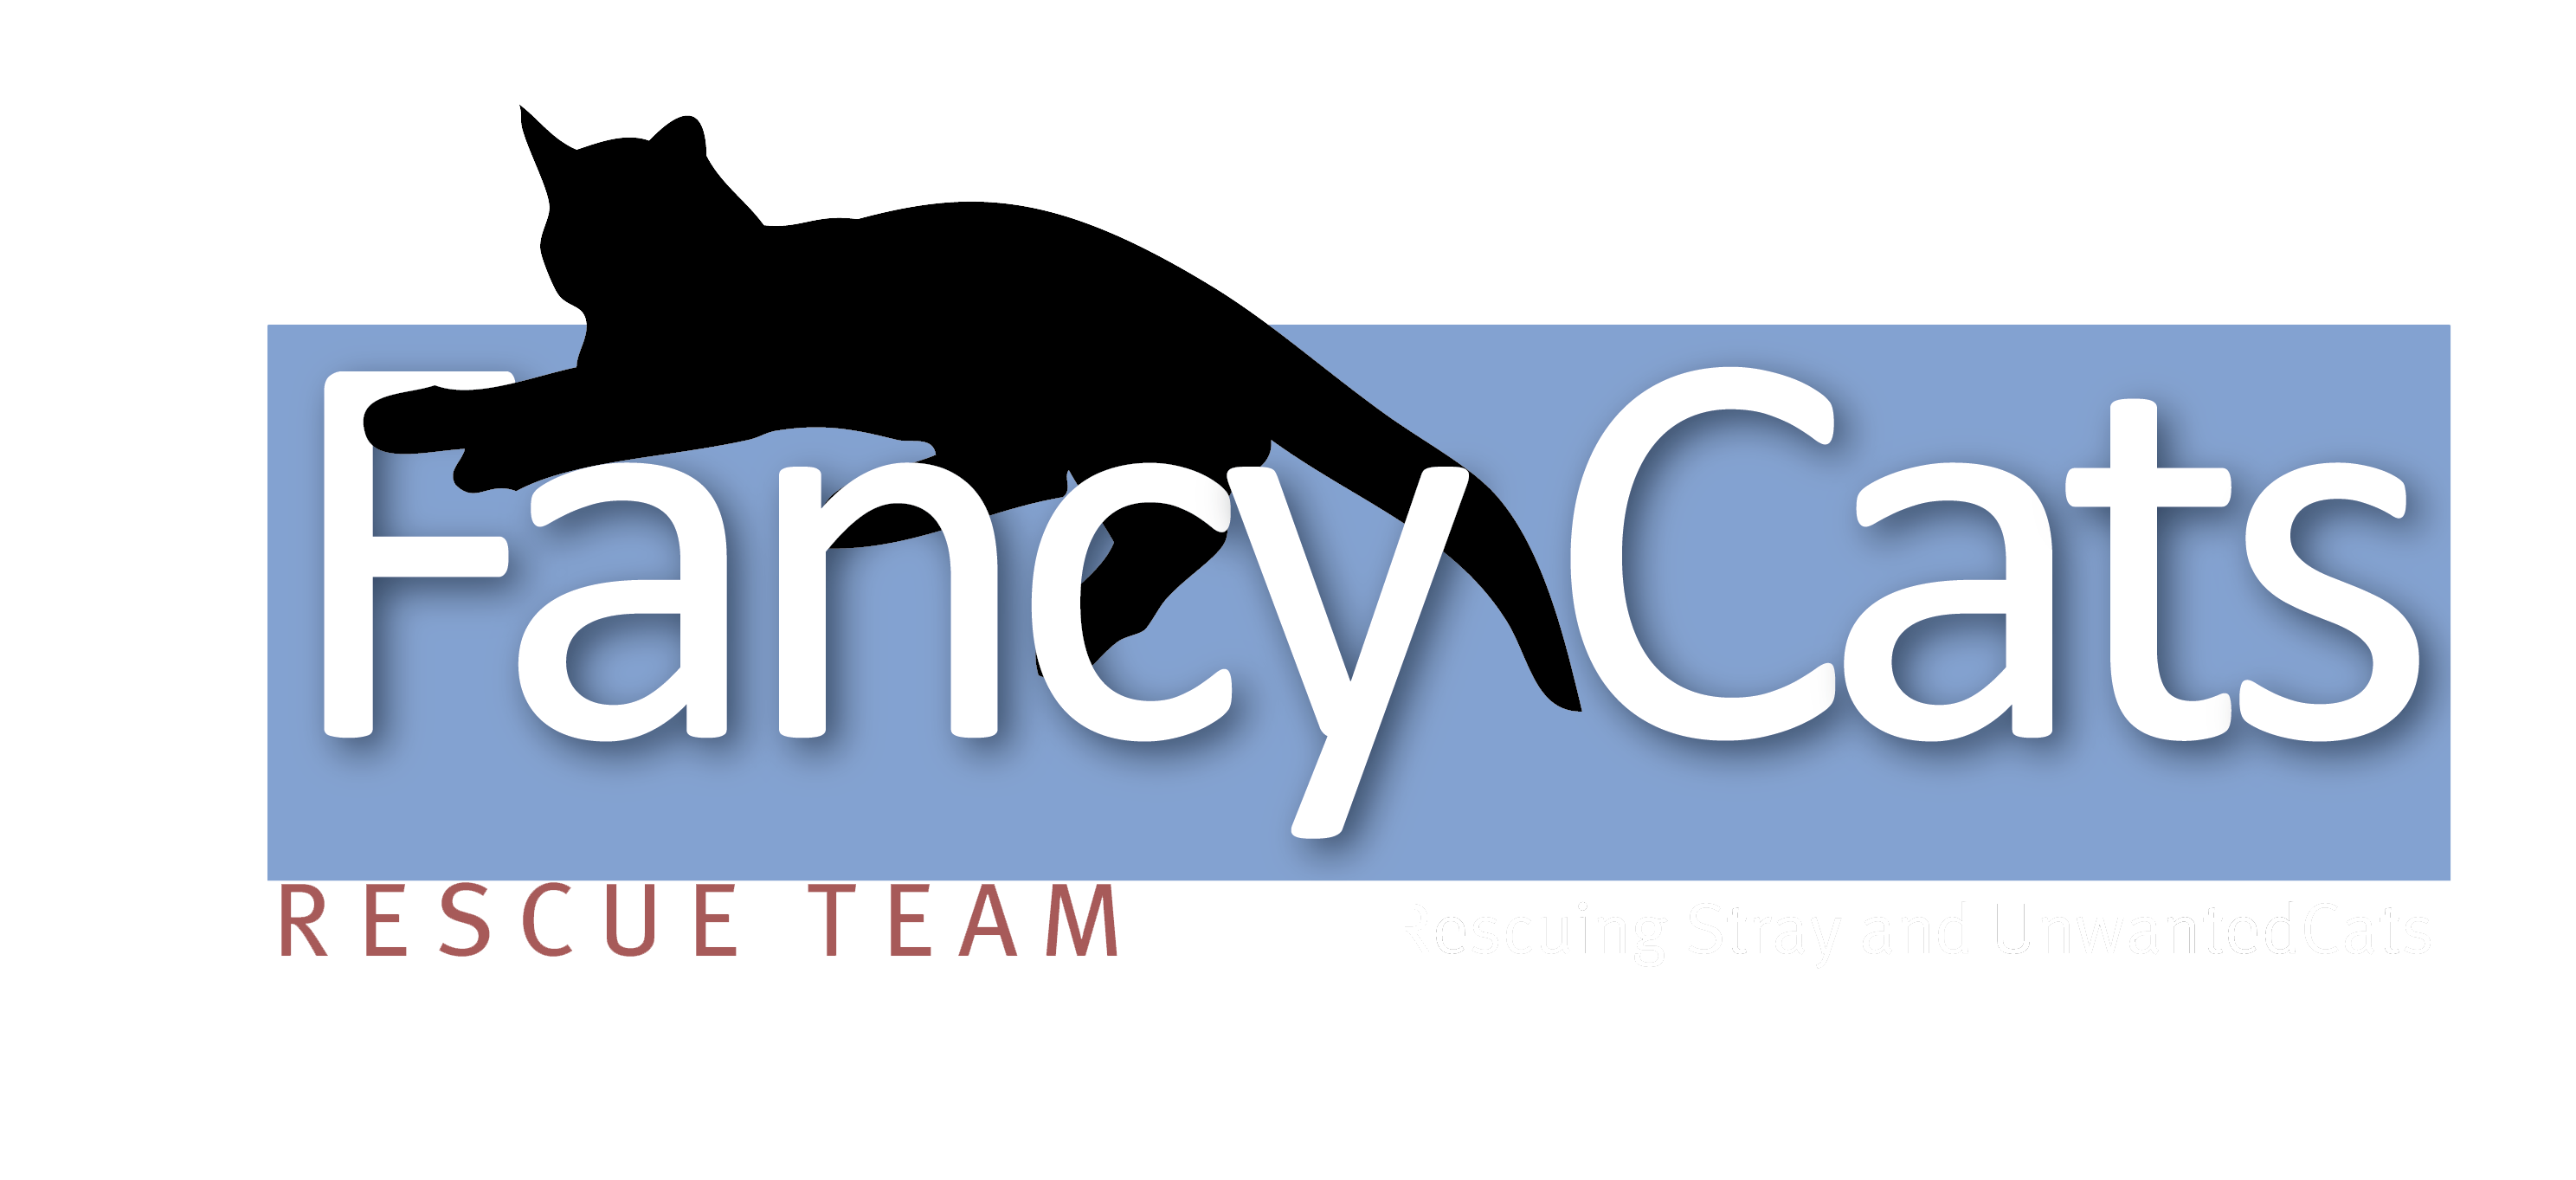 Fancy Cats Rescue Team, Inc.